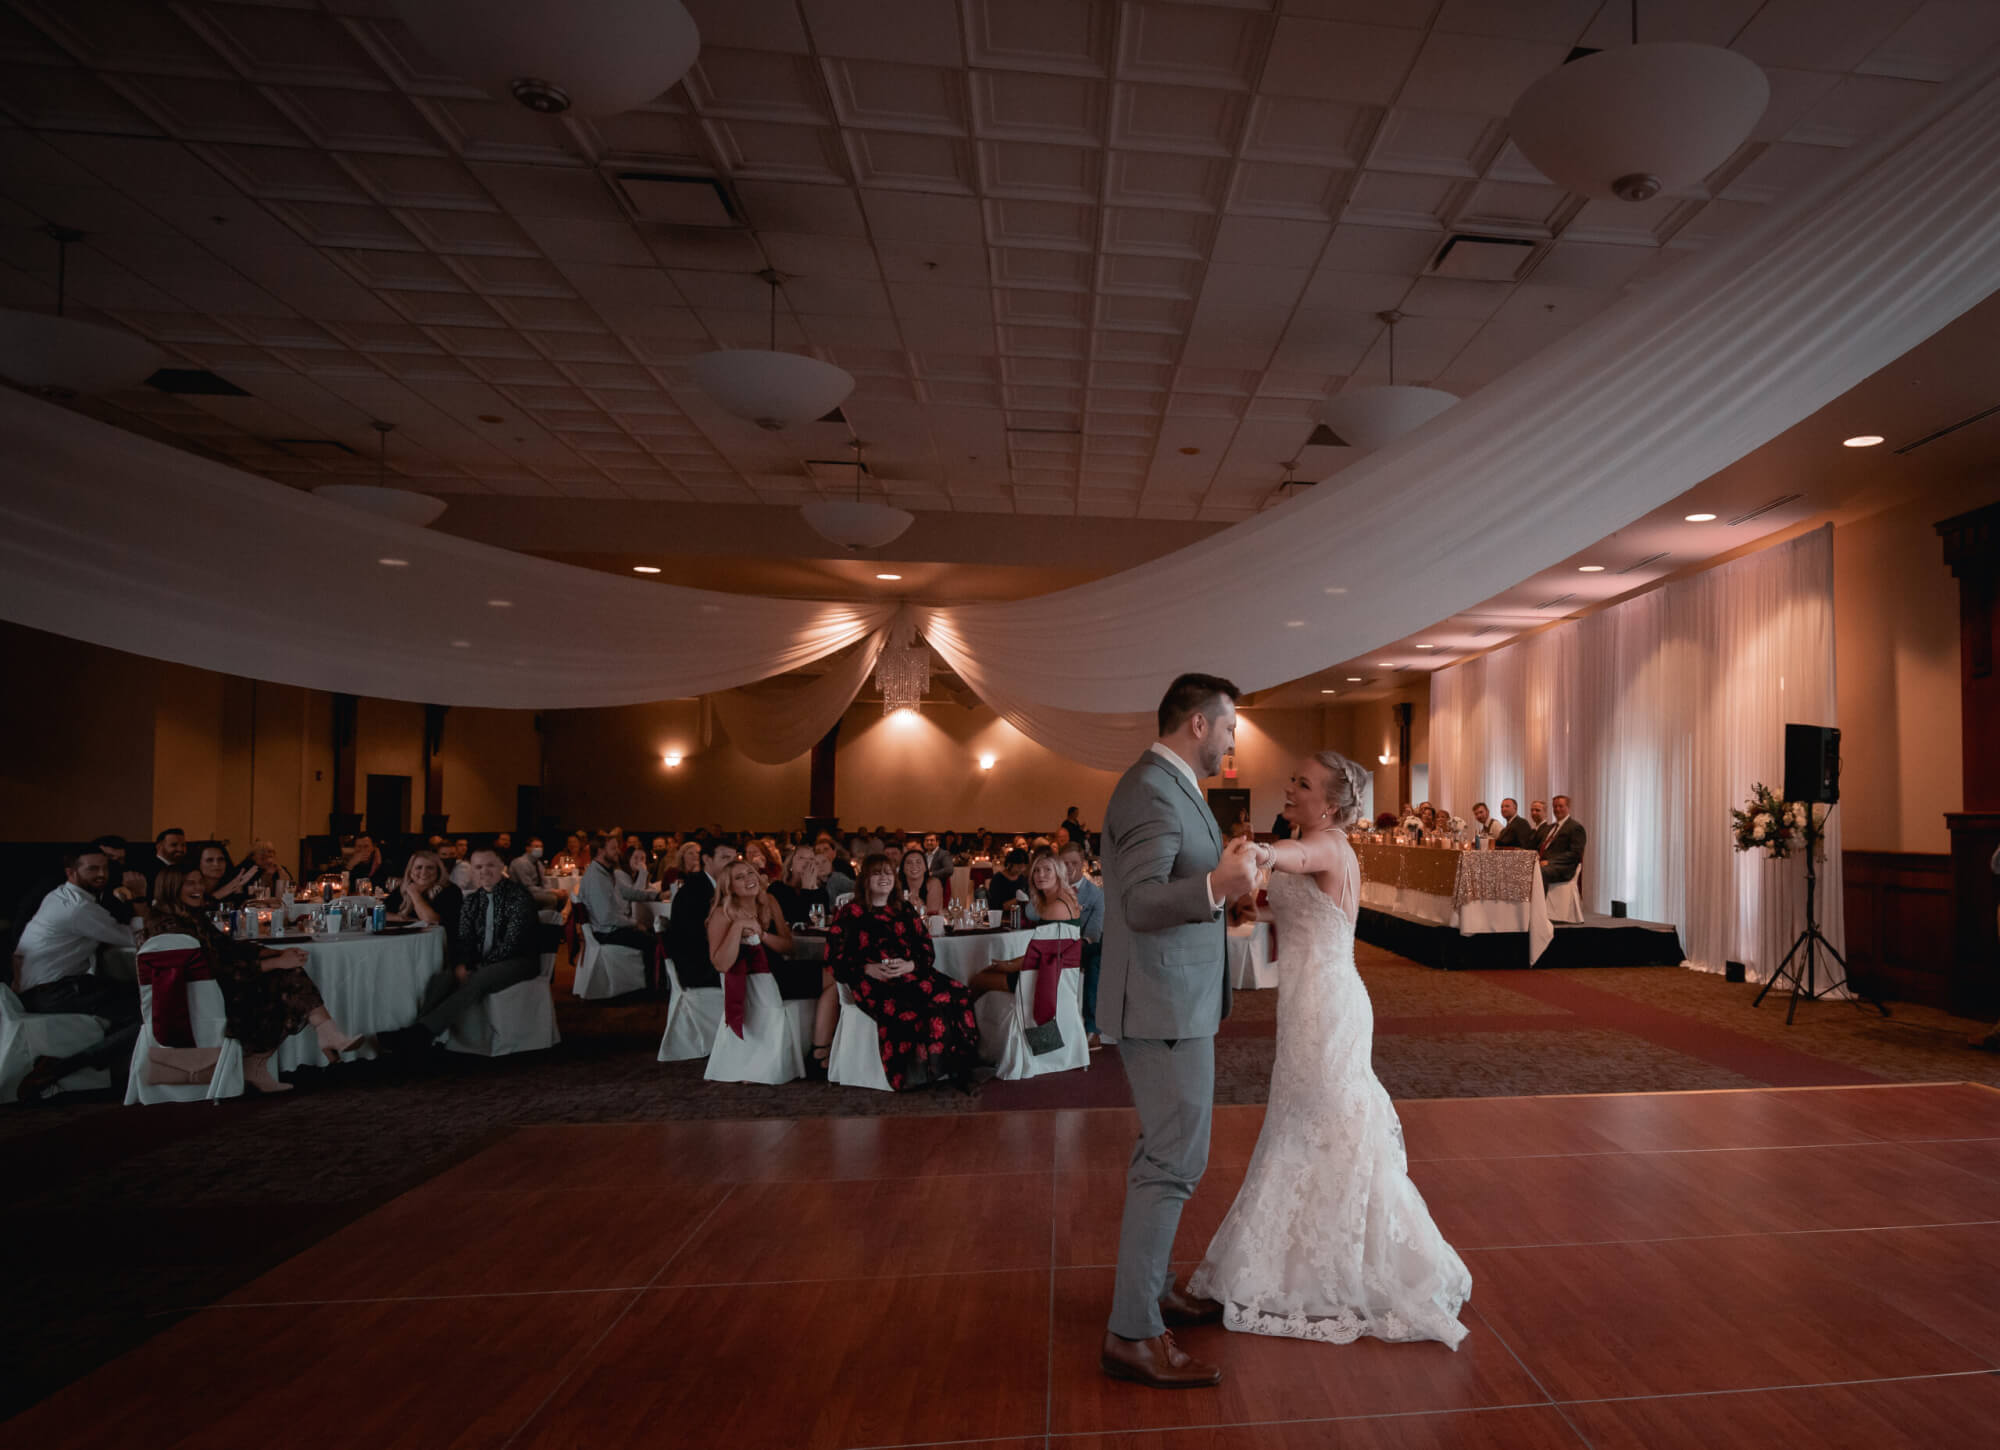 A couple dances their first dance at their wedding in the Forte grand ballroom.